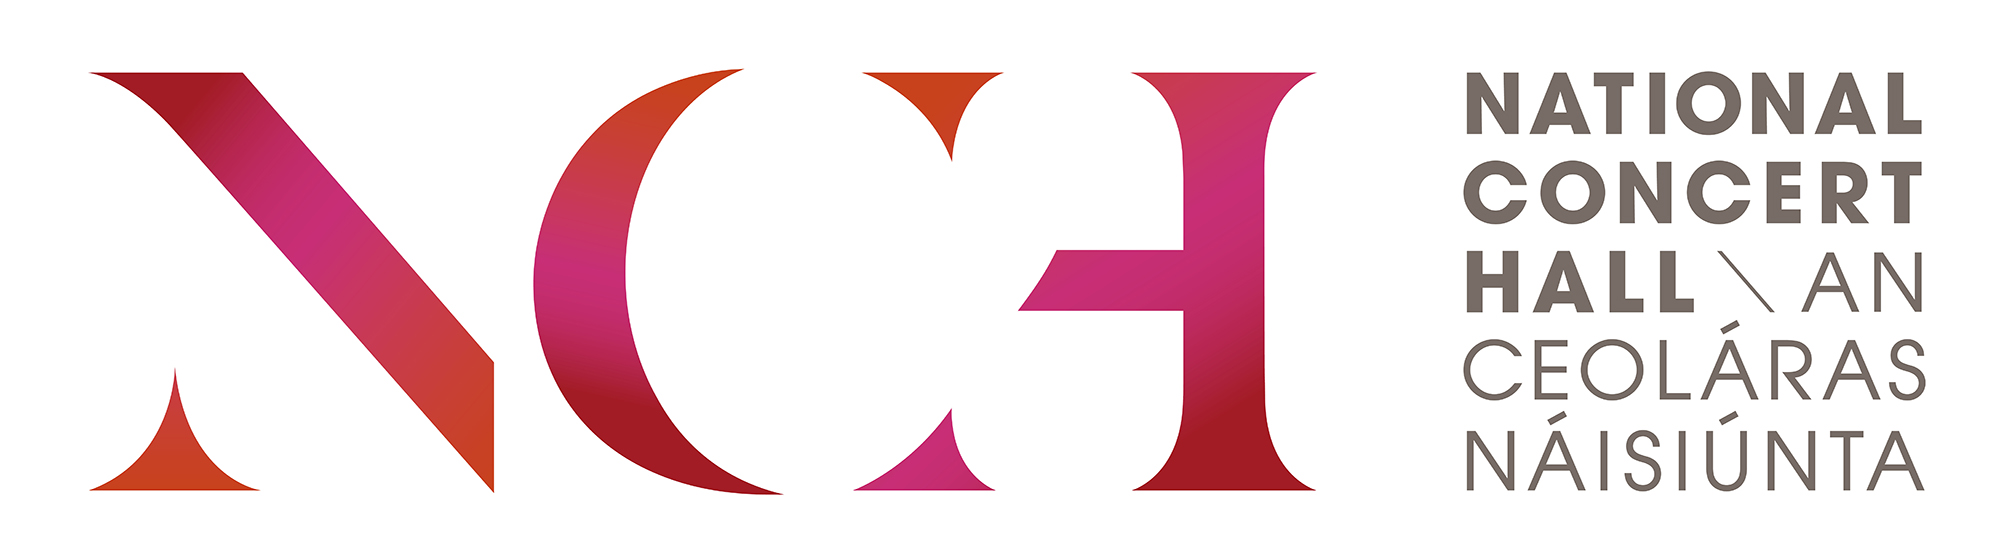 Cover image: NCH Rebrand